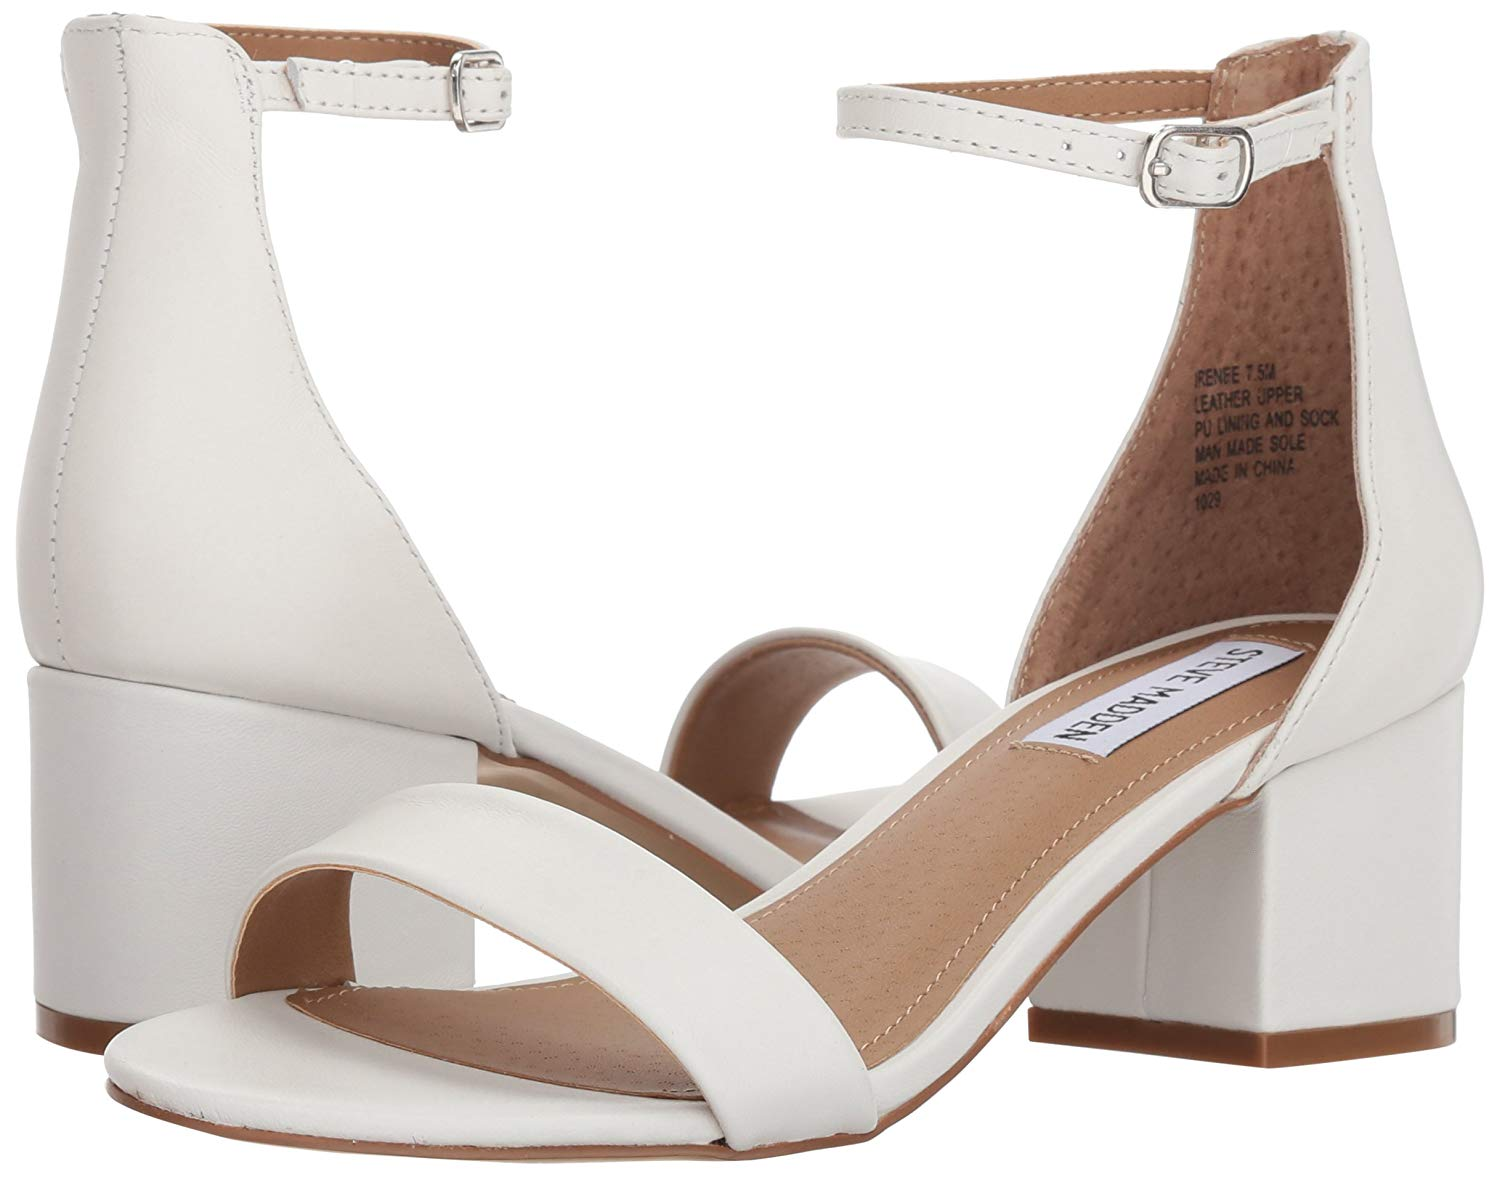 Details about Steve Madden Womens Irenee Open Toe Formal Ankle Strap, White Leather, Size 6.0